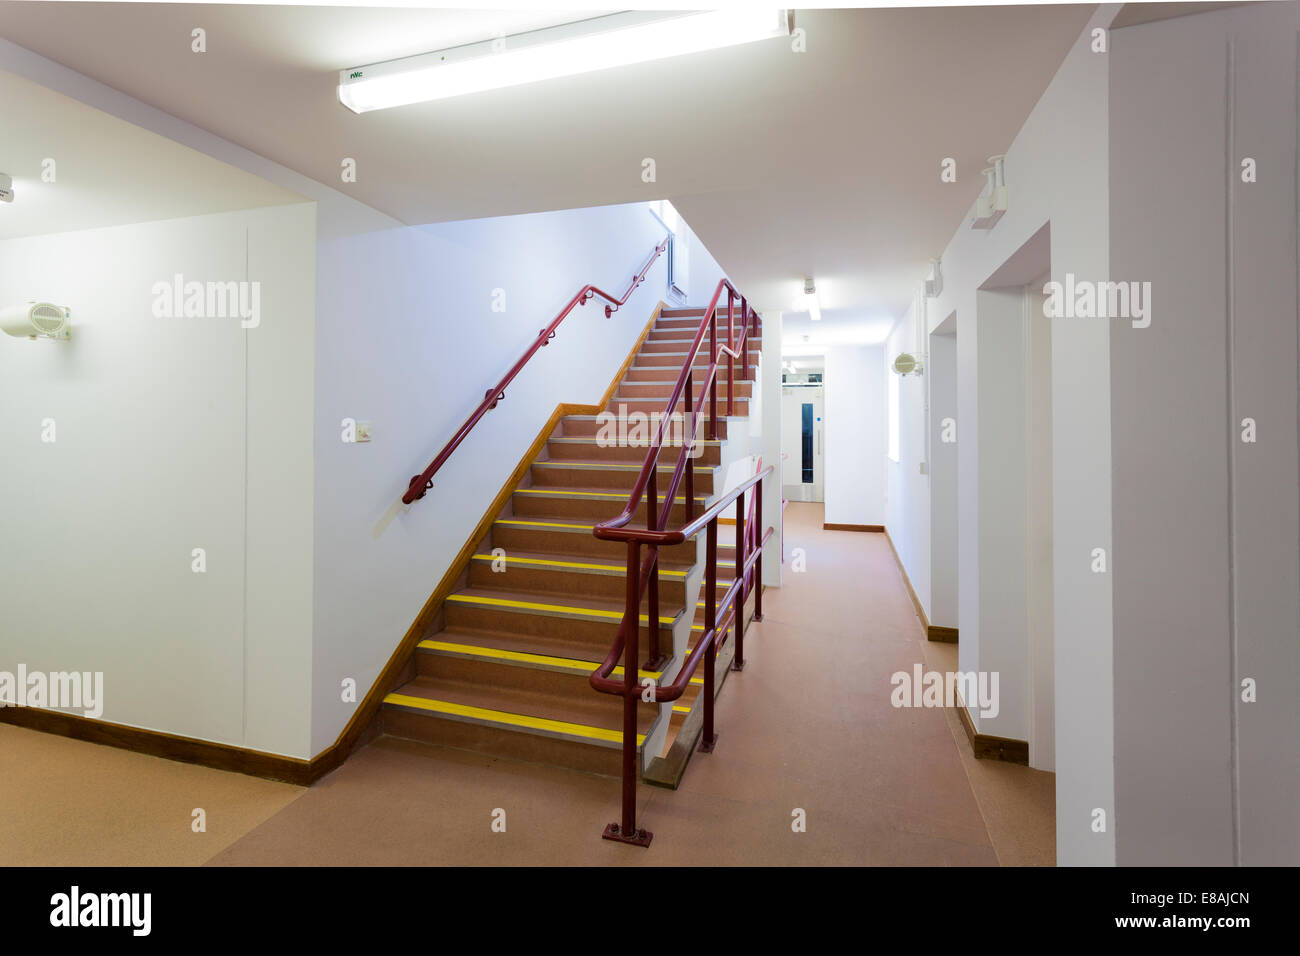 Staircase and corridor inside army barracks. - Stock Image